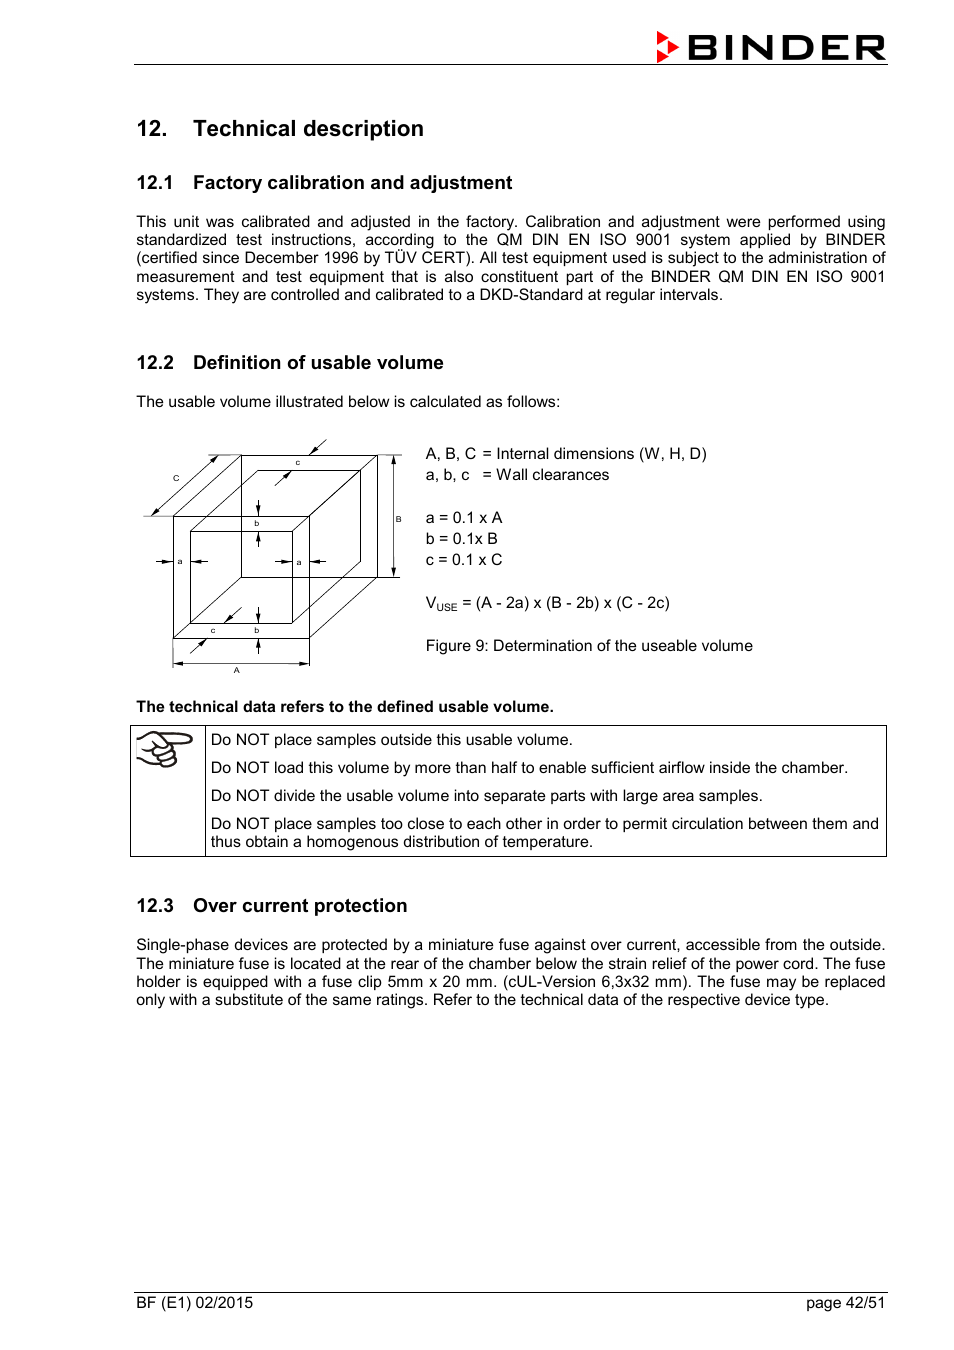 Technical description, 1 factory calibration and adjustment, 2 definition  of usable volume | 3